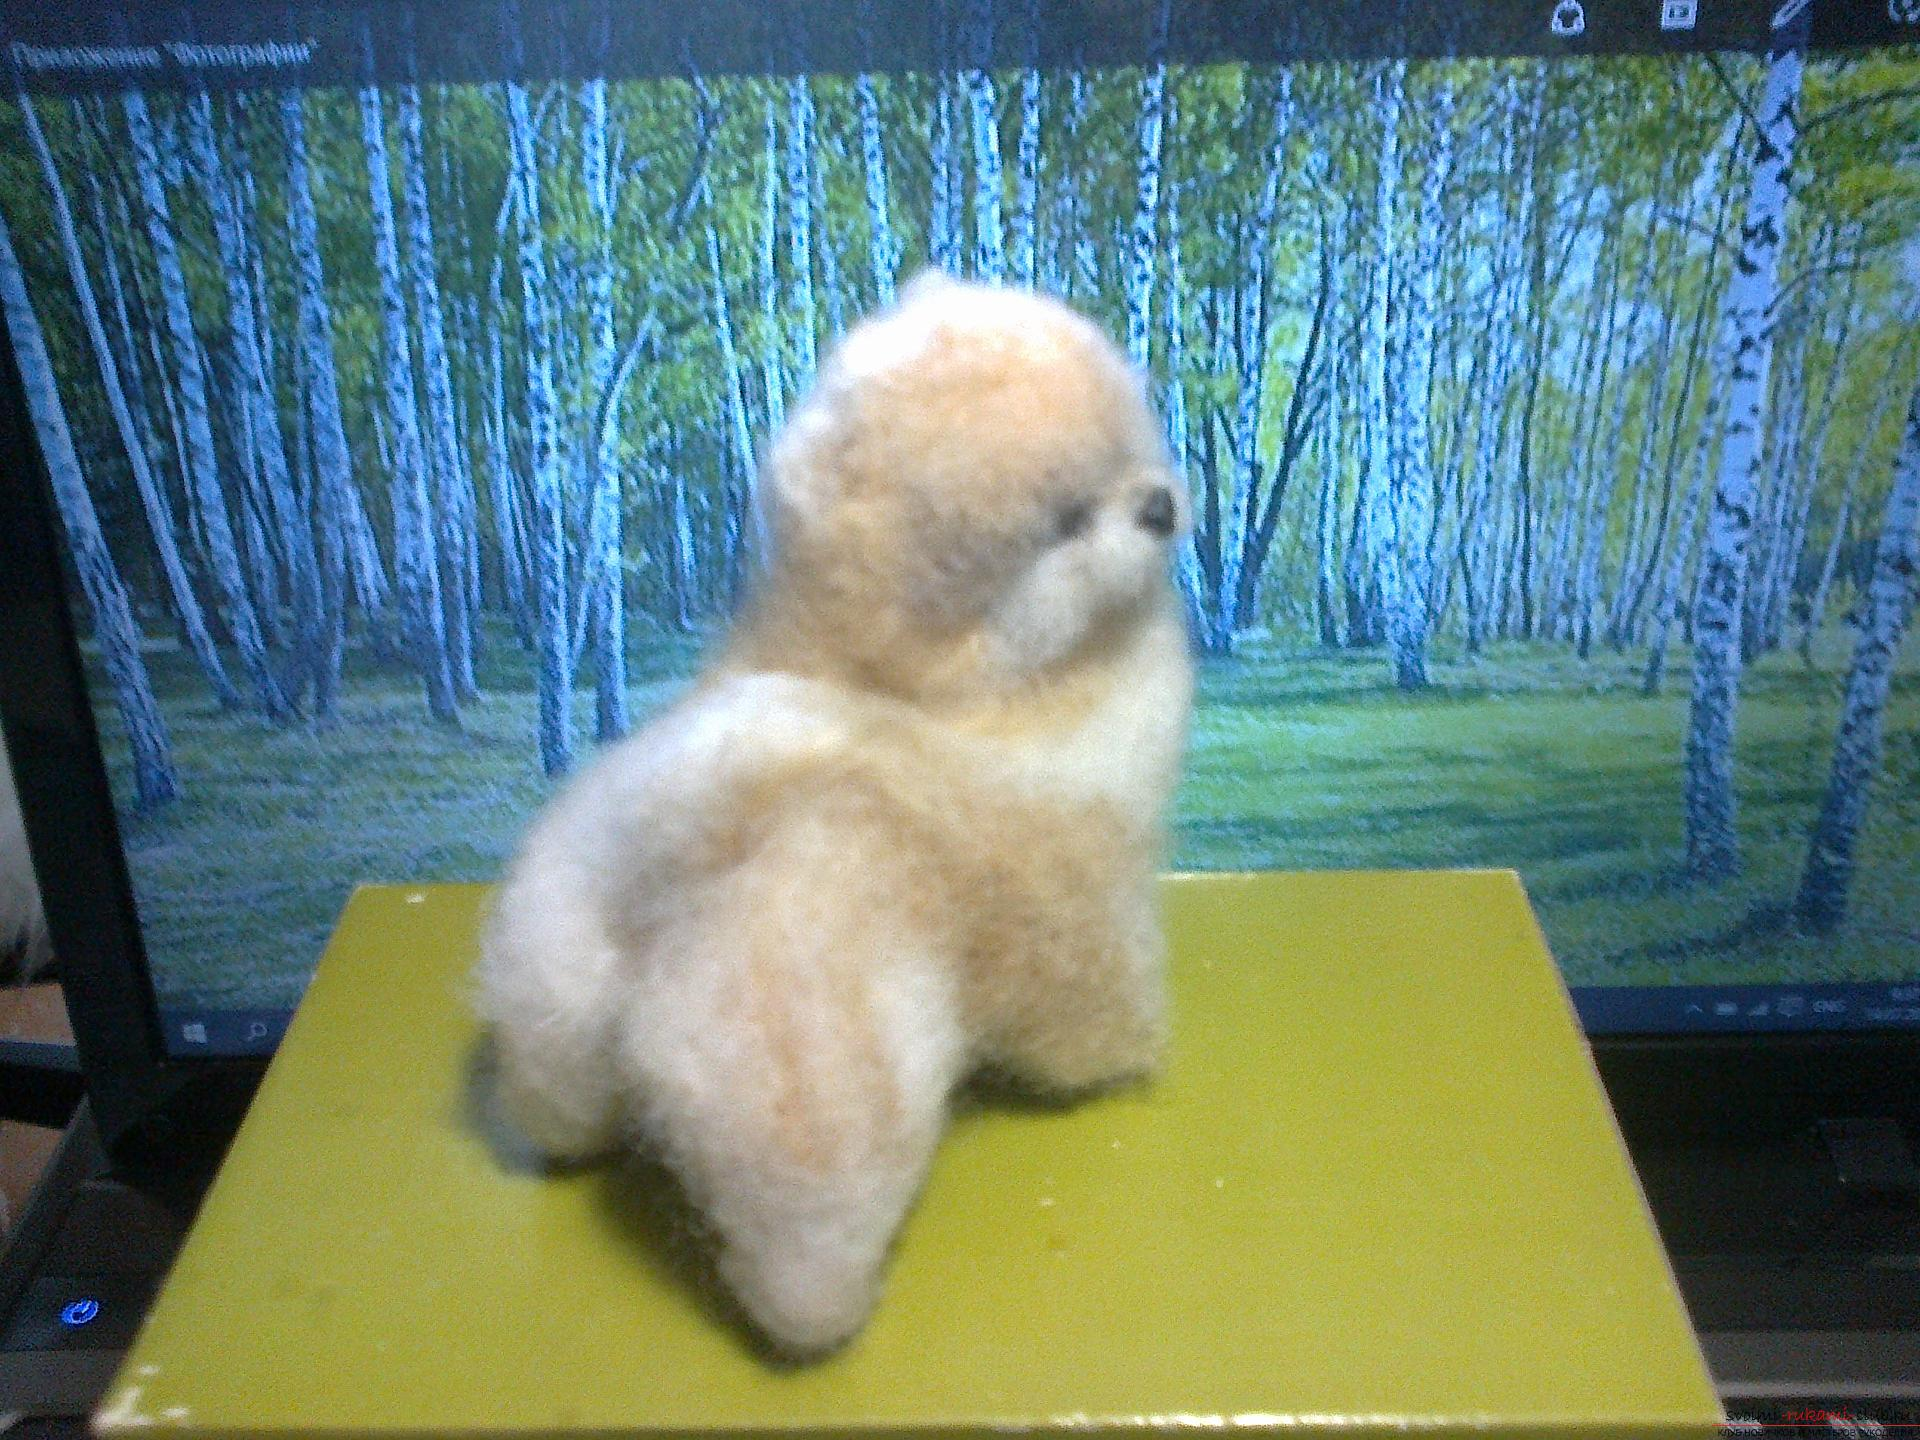 The original toy is a dog made in the technique of dry felting. Photo # 2